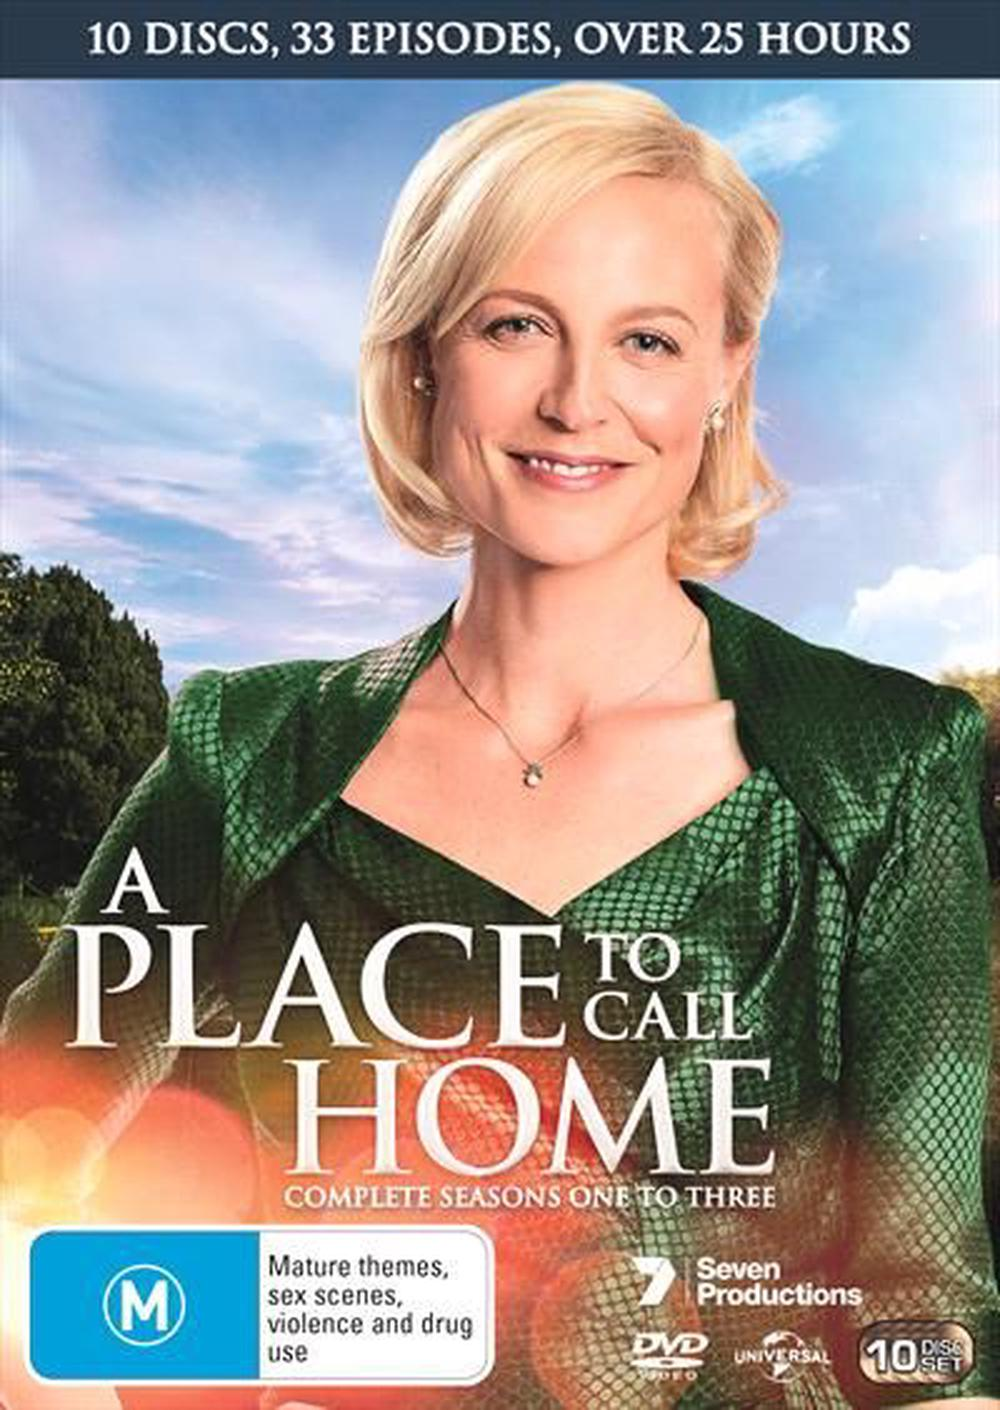 a place to call home series 1 buy online drama buy a place to call home The Nile